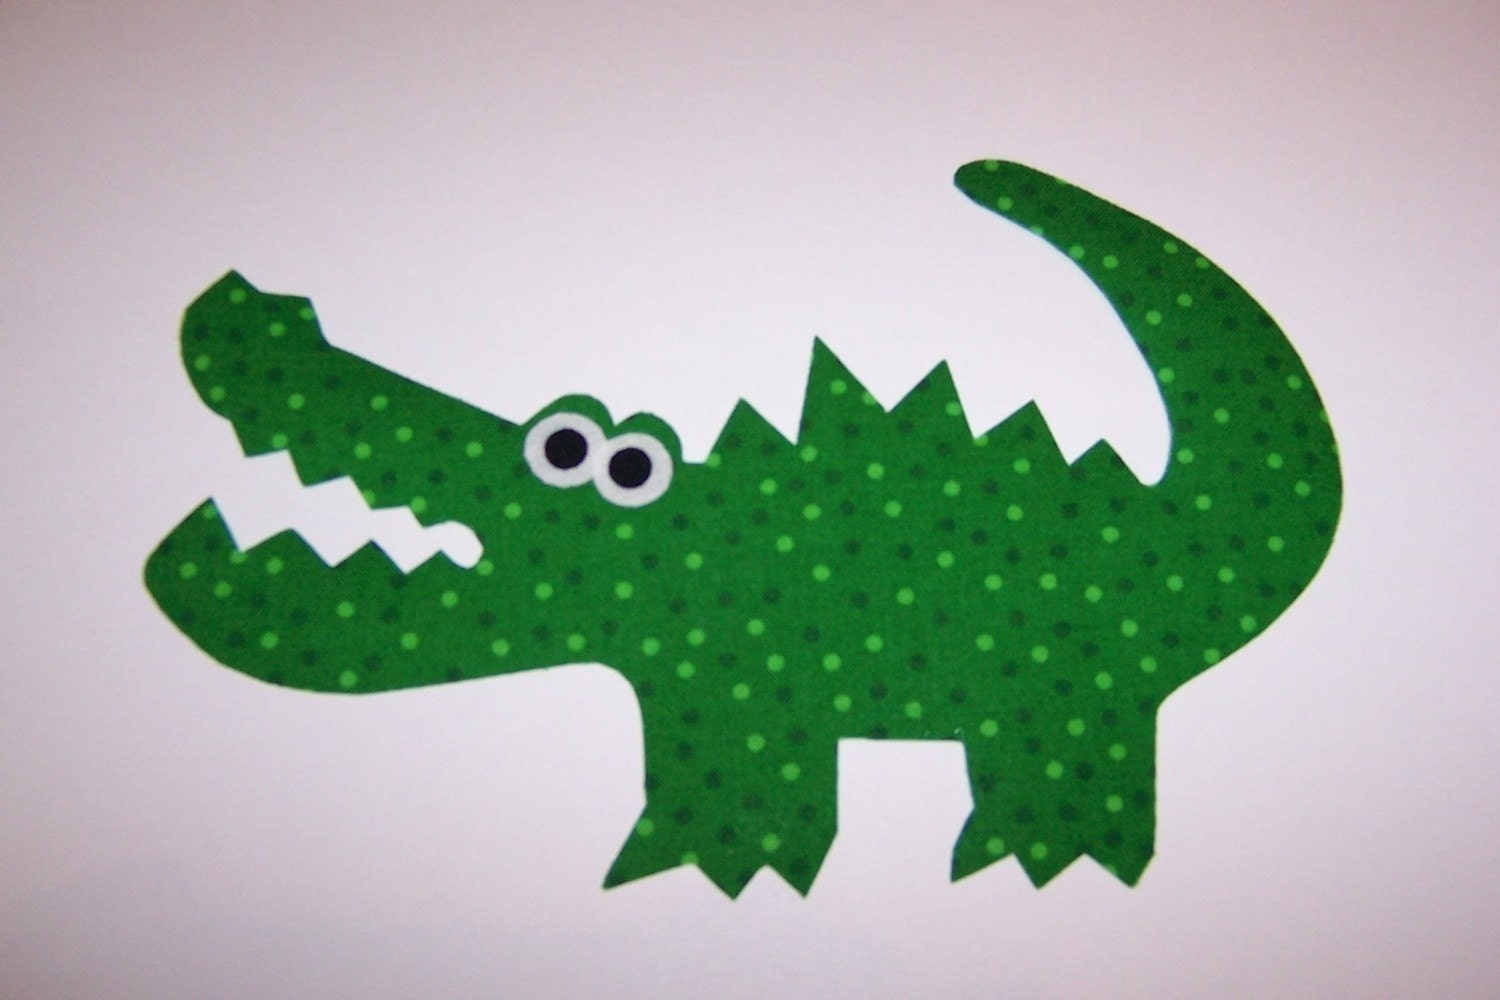 ... stencils/new-2009-templates/a-is-for-alligator-template/prod_6000.html